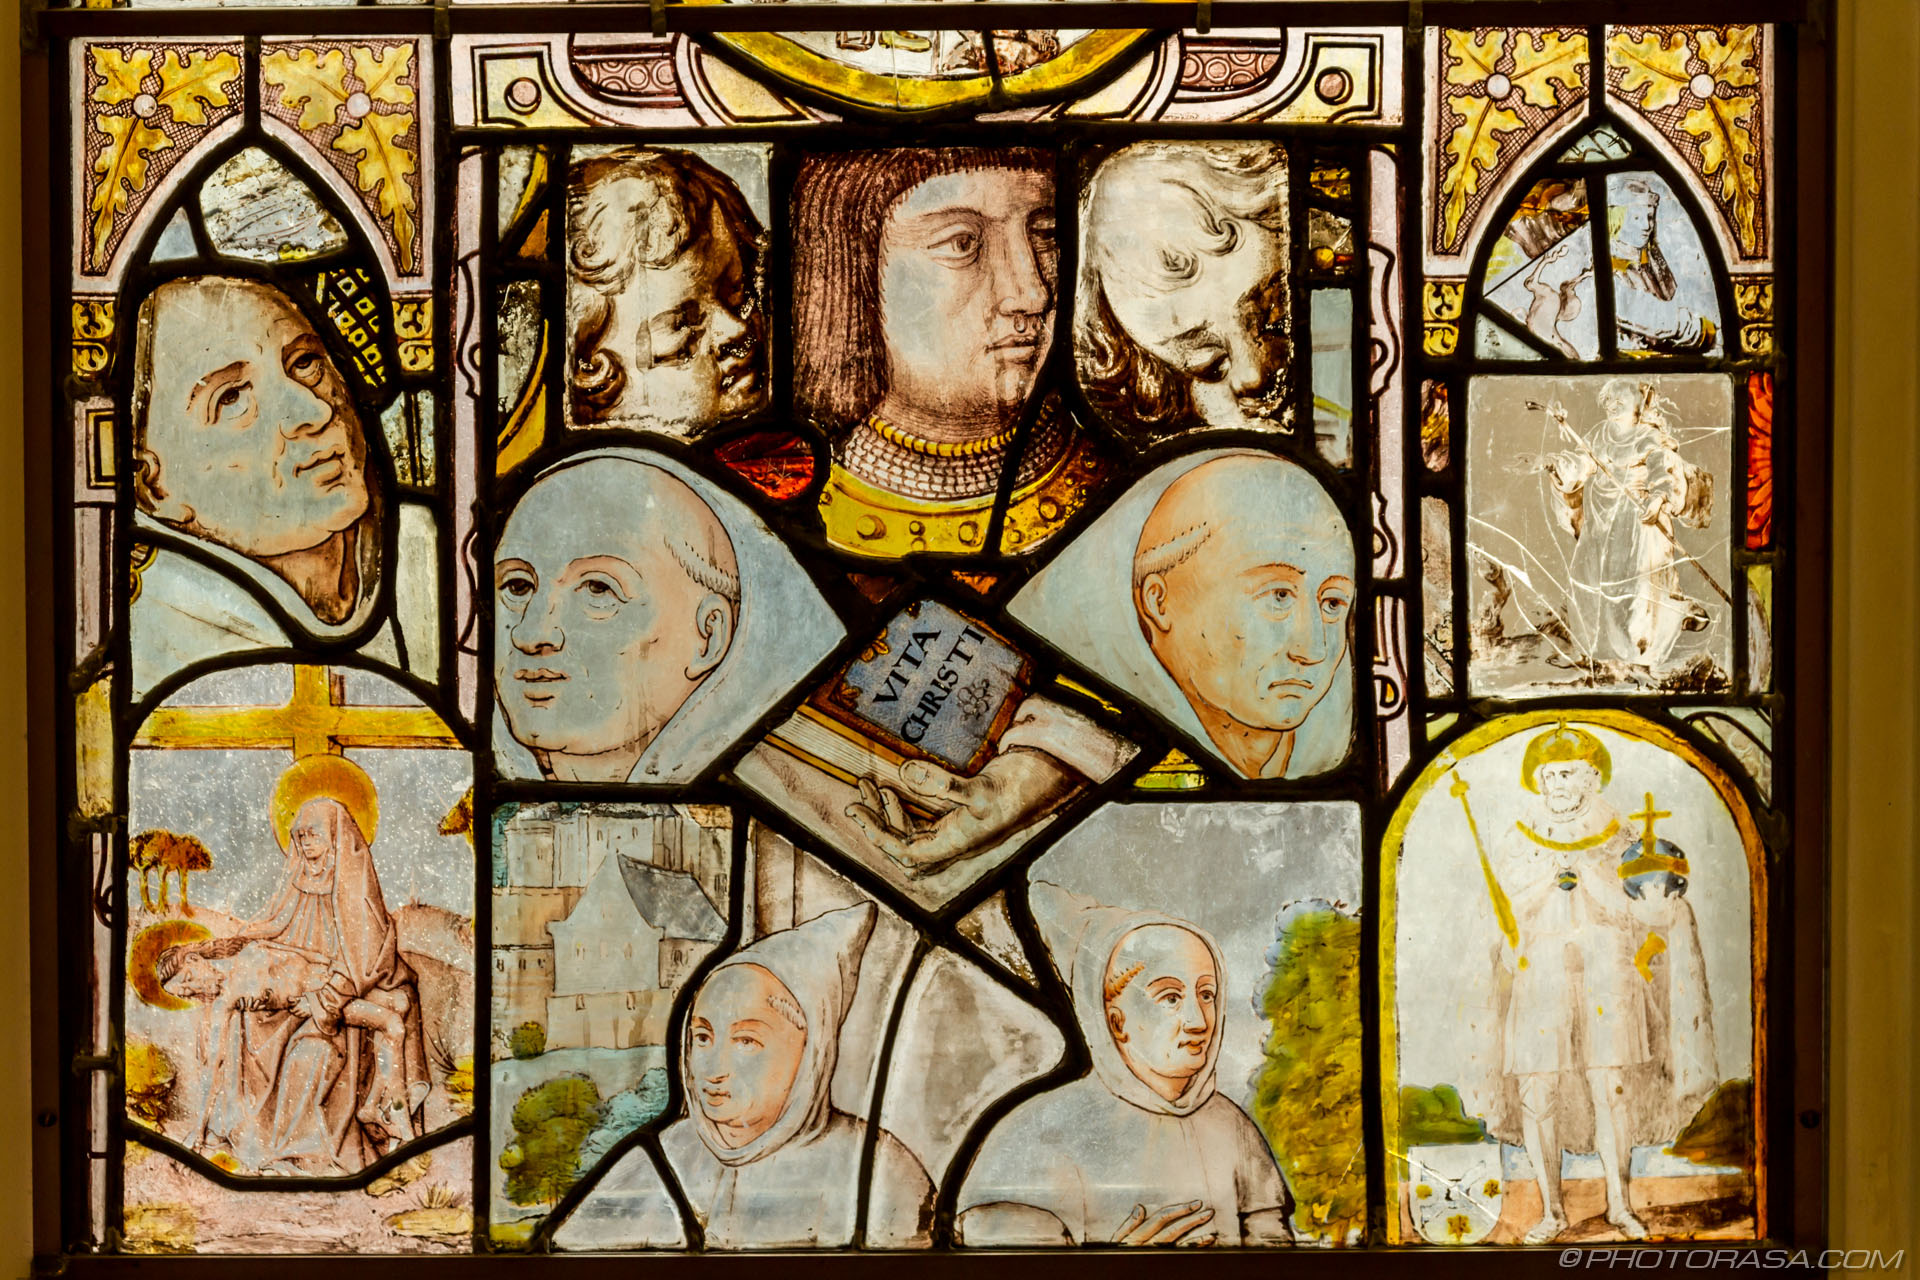 https://photorasa.com/old-dutch-and-flemish-stained-glass/stained-glass-patchwork-of-people-and-faces/